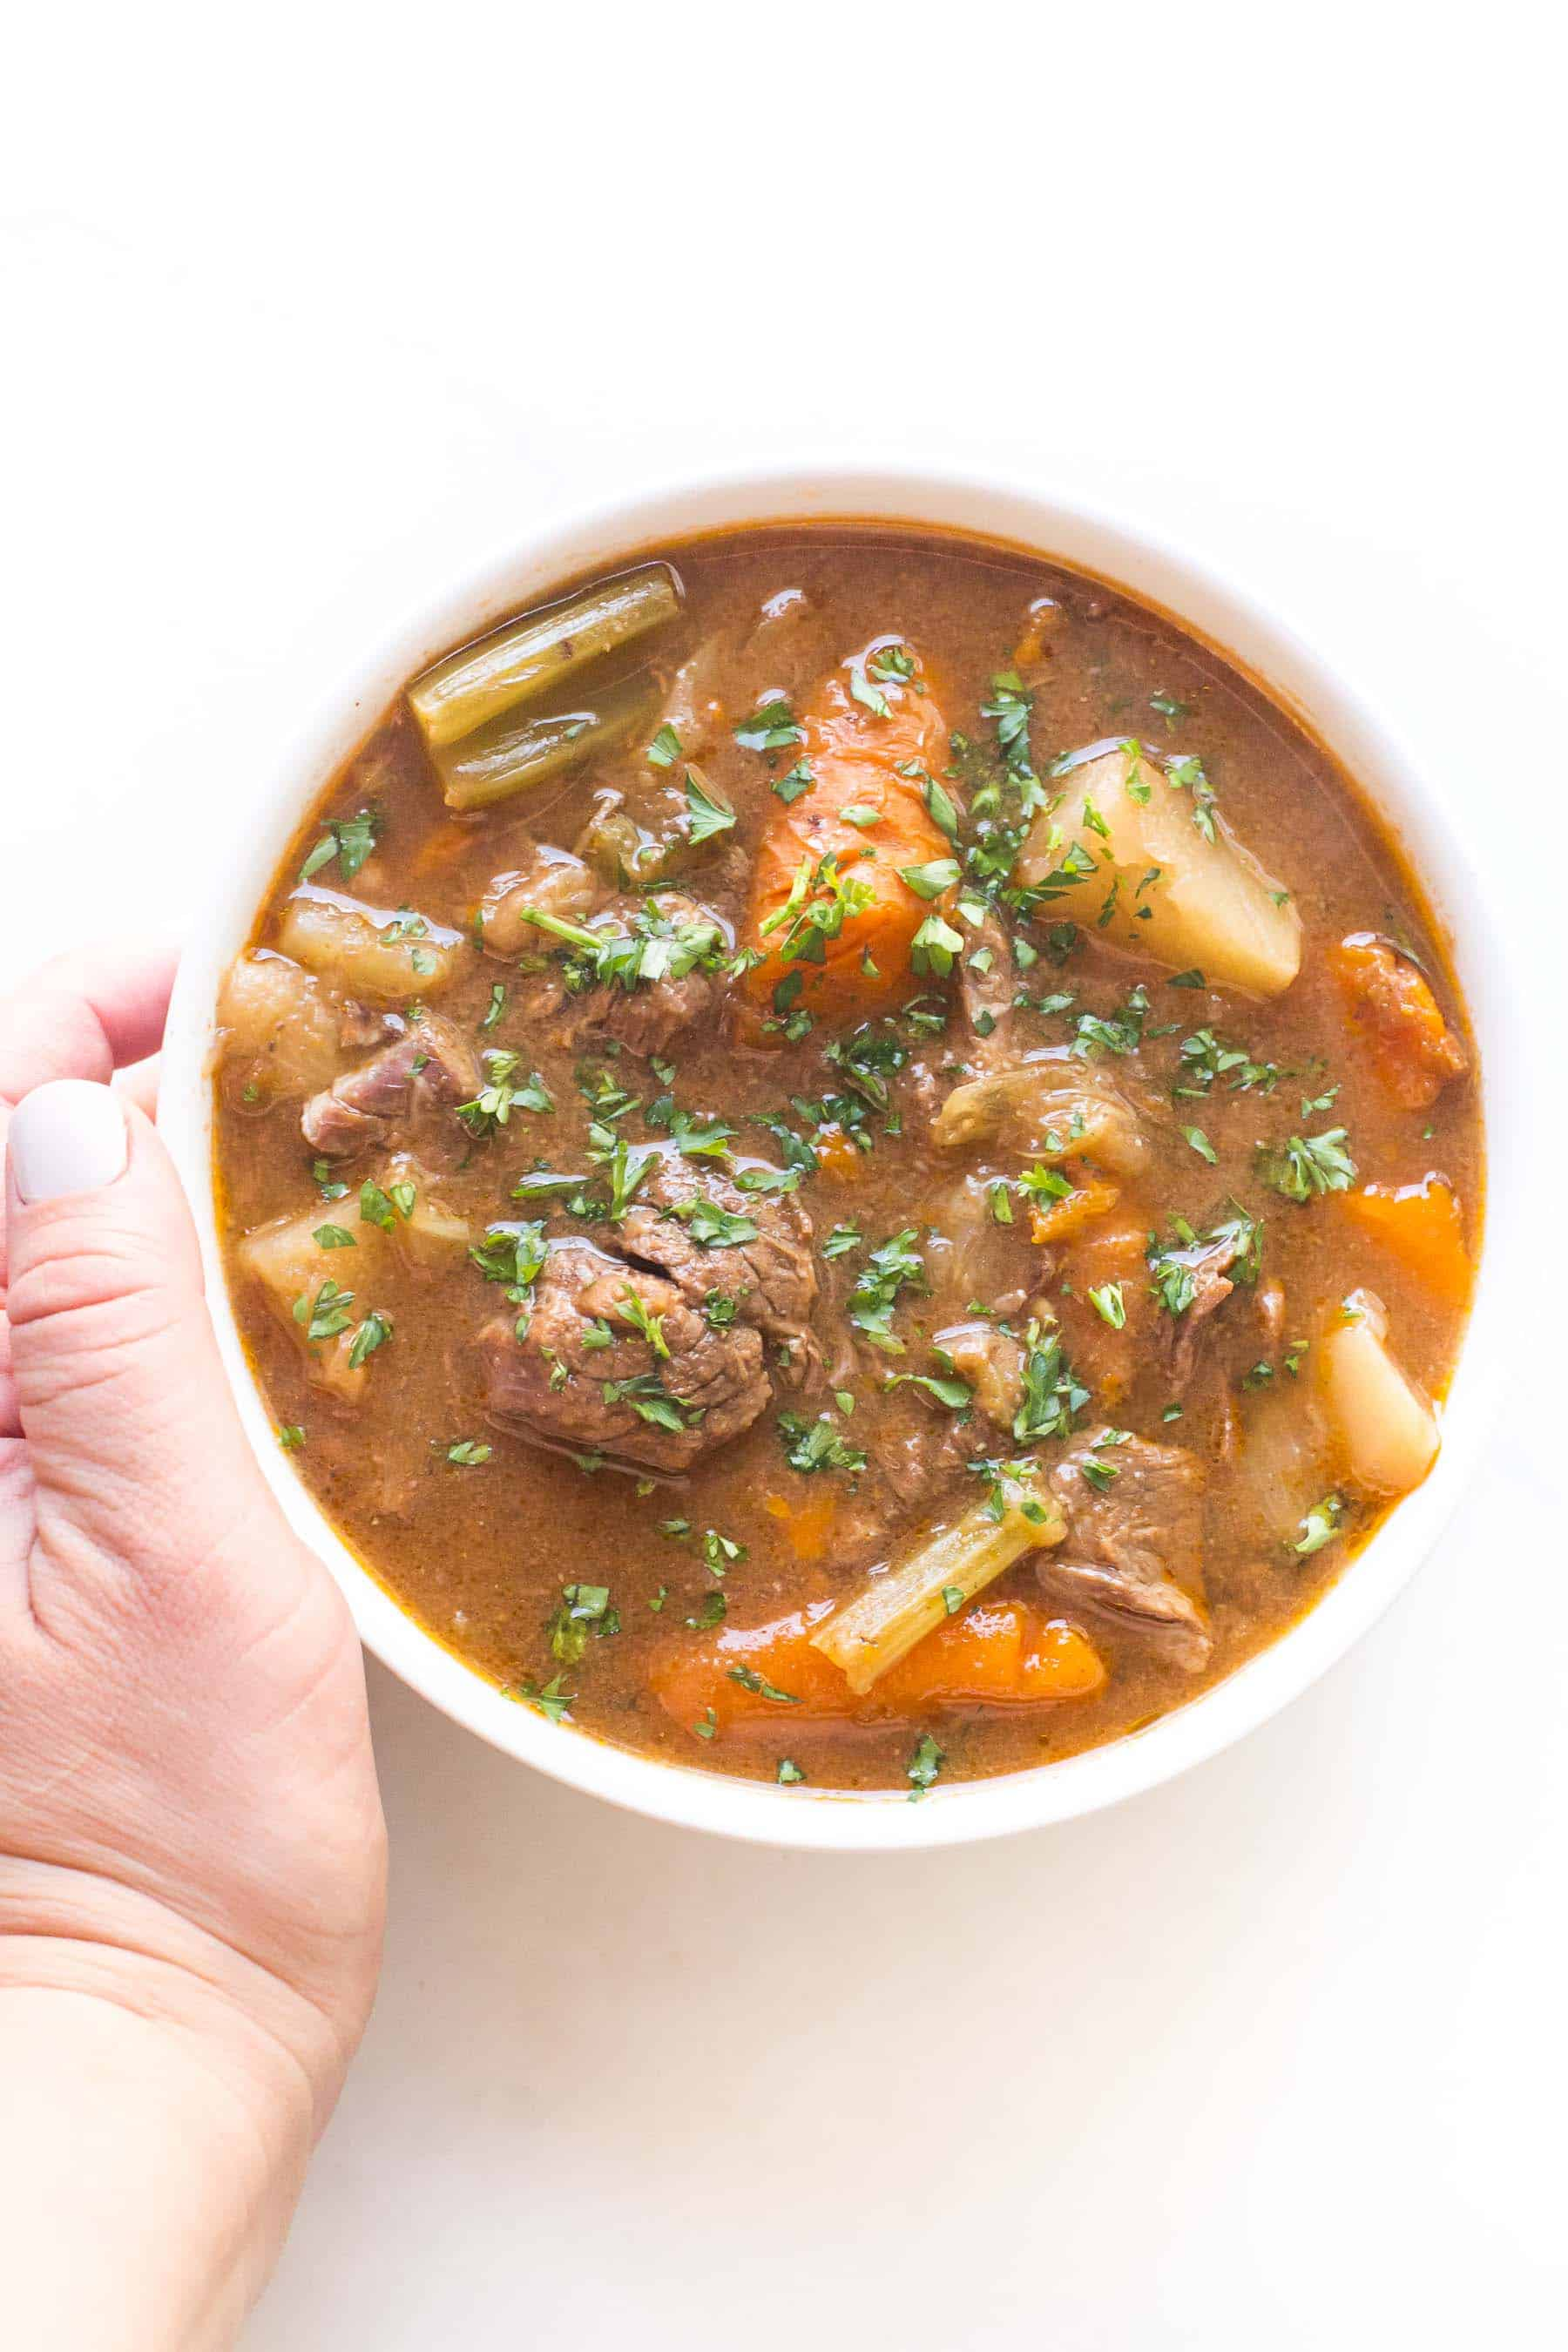 hand holding beef stew in a white bowl on a white background